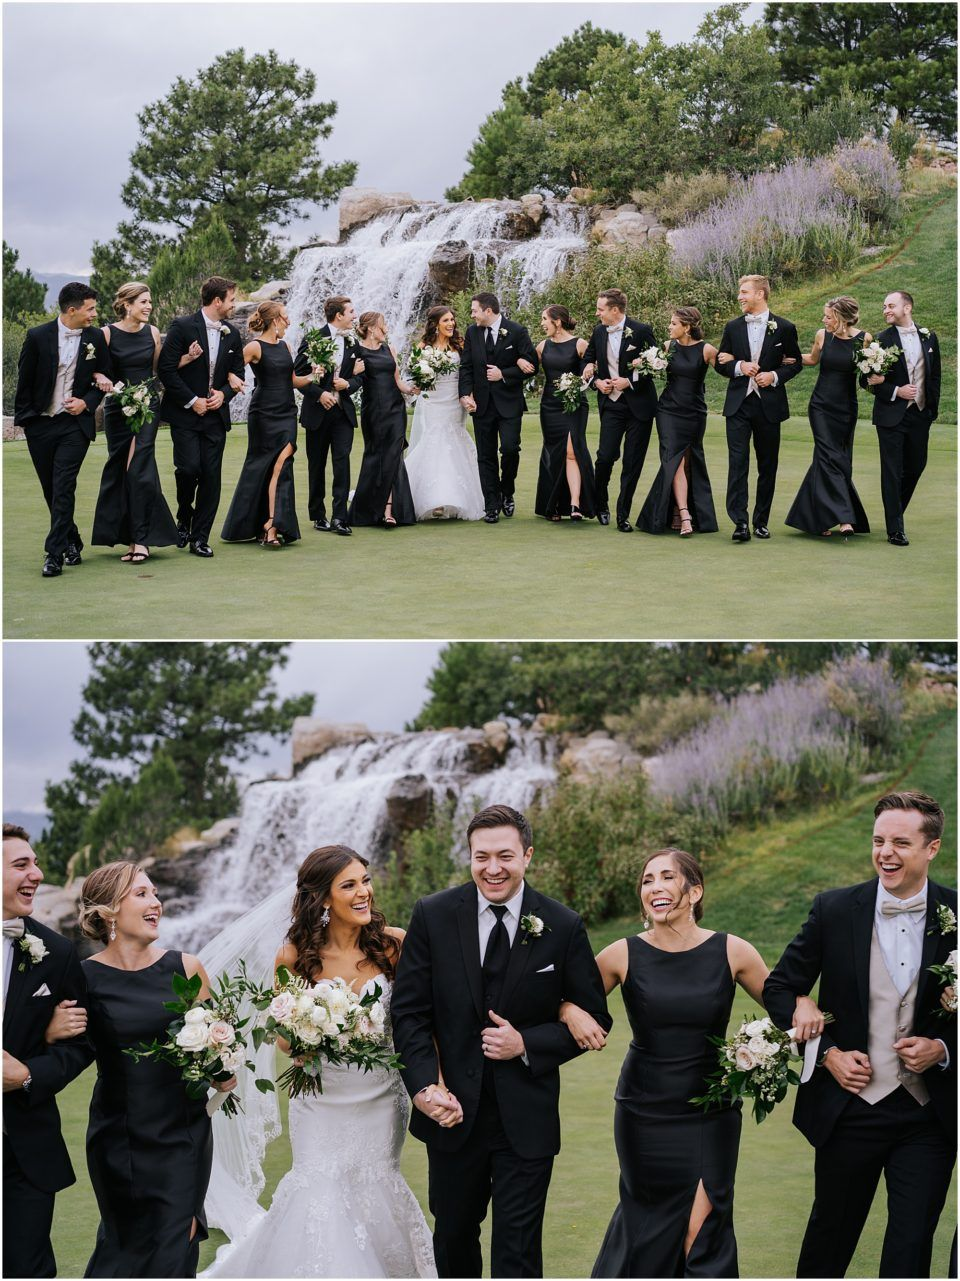 Sanctuary Golf Course Wedding Party In Black Dresses And Tux Golf Course Wedding Photos Black Bridal Parties Golf Course Wedding [ 1281 x 960 Pixel ]